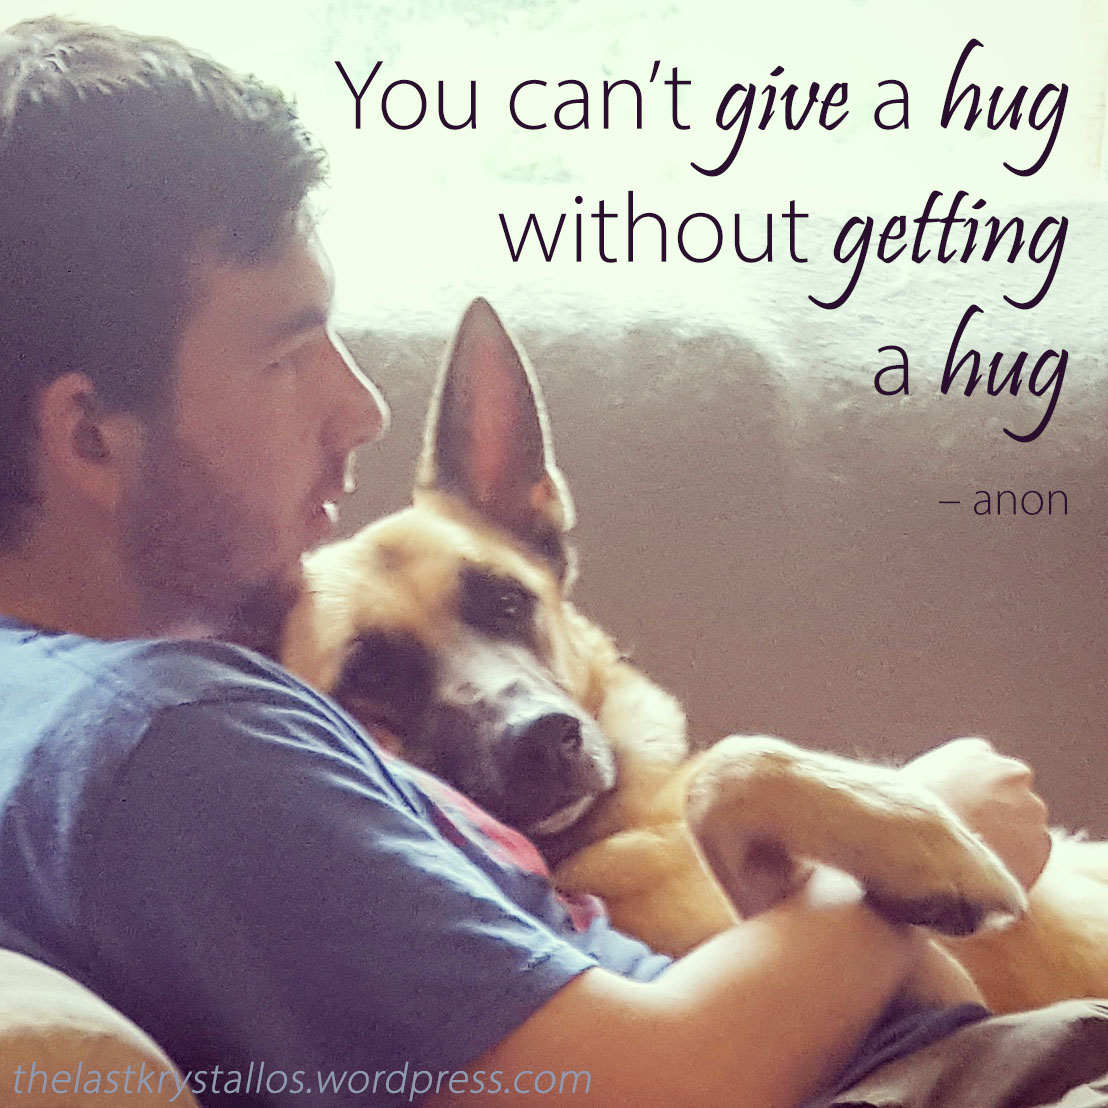 You can't give a hug without getting a hug – anon - the last krystallos